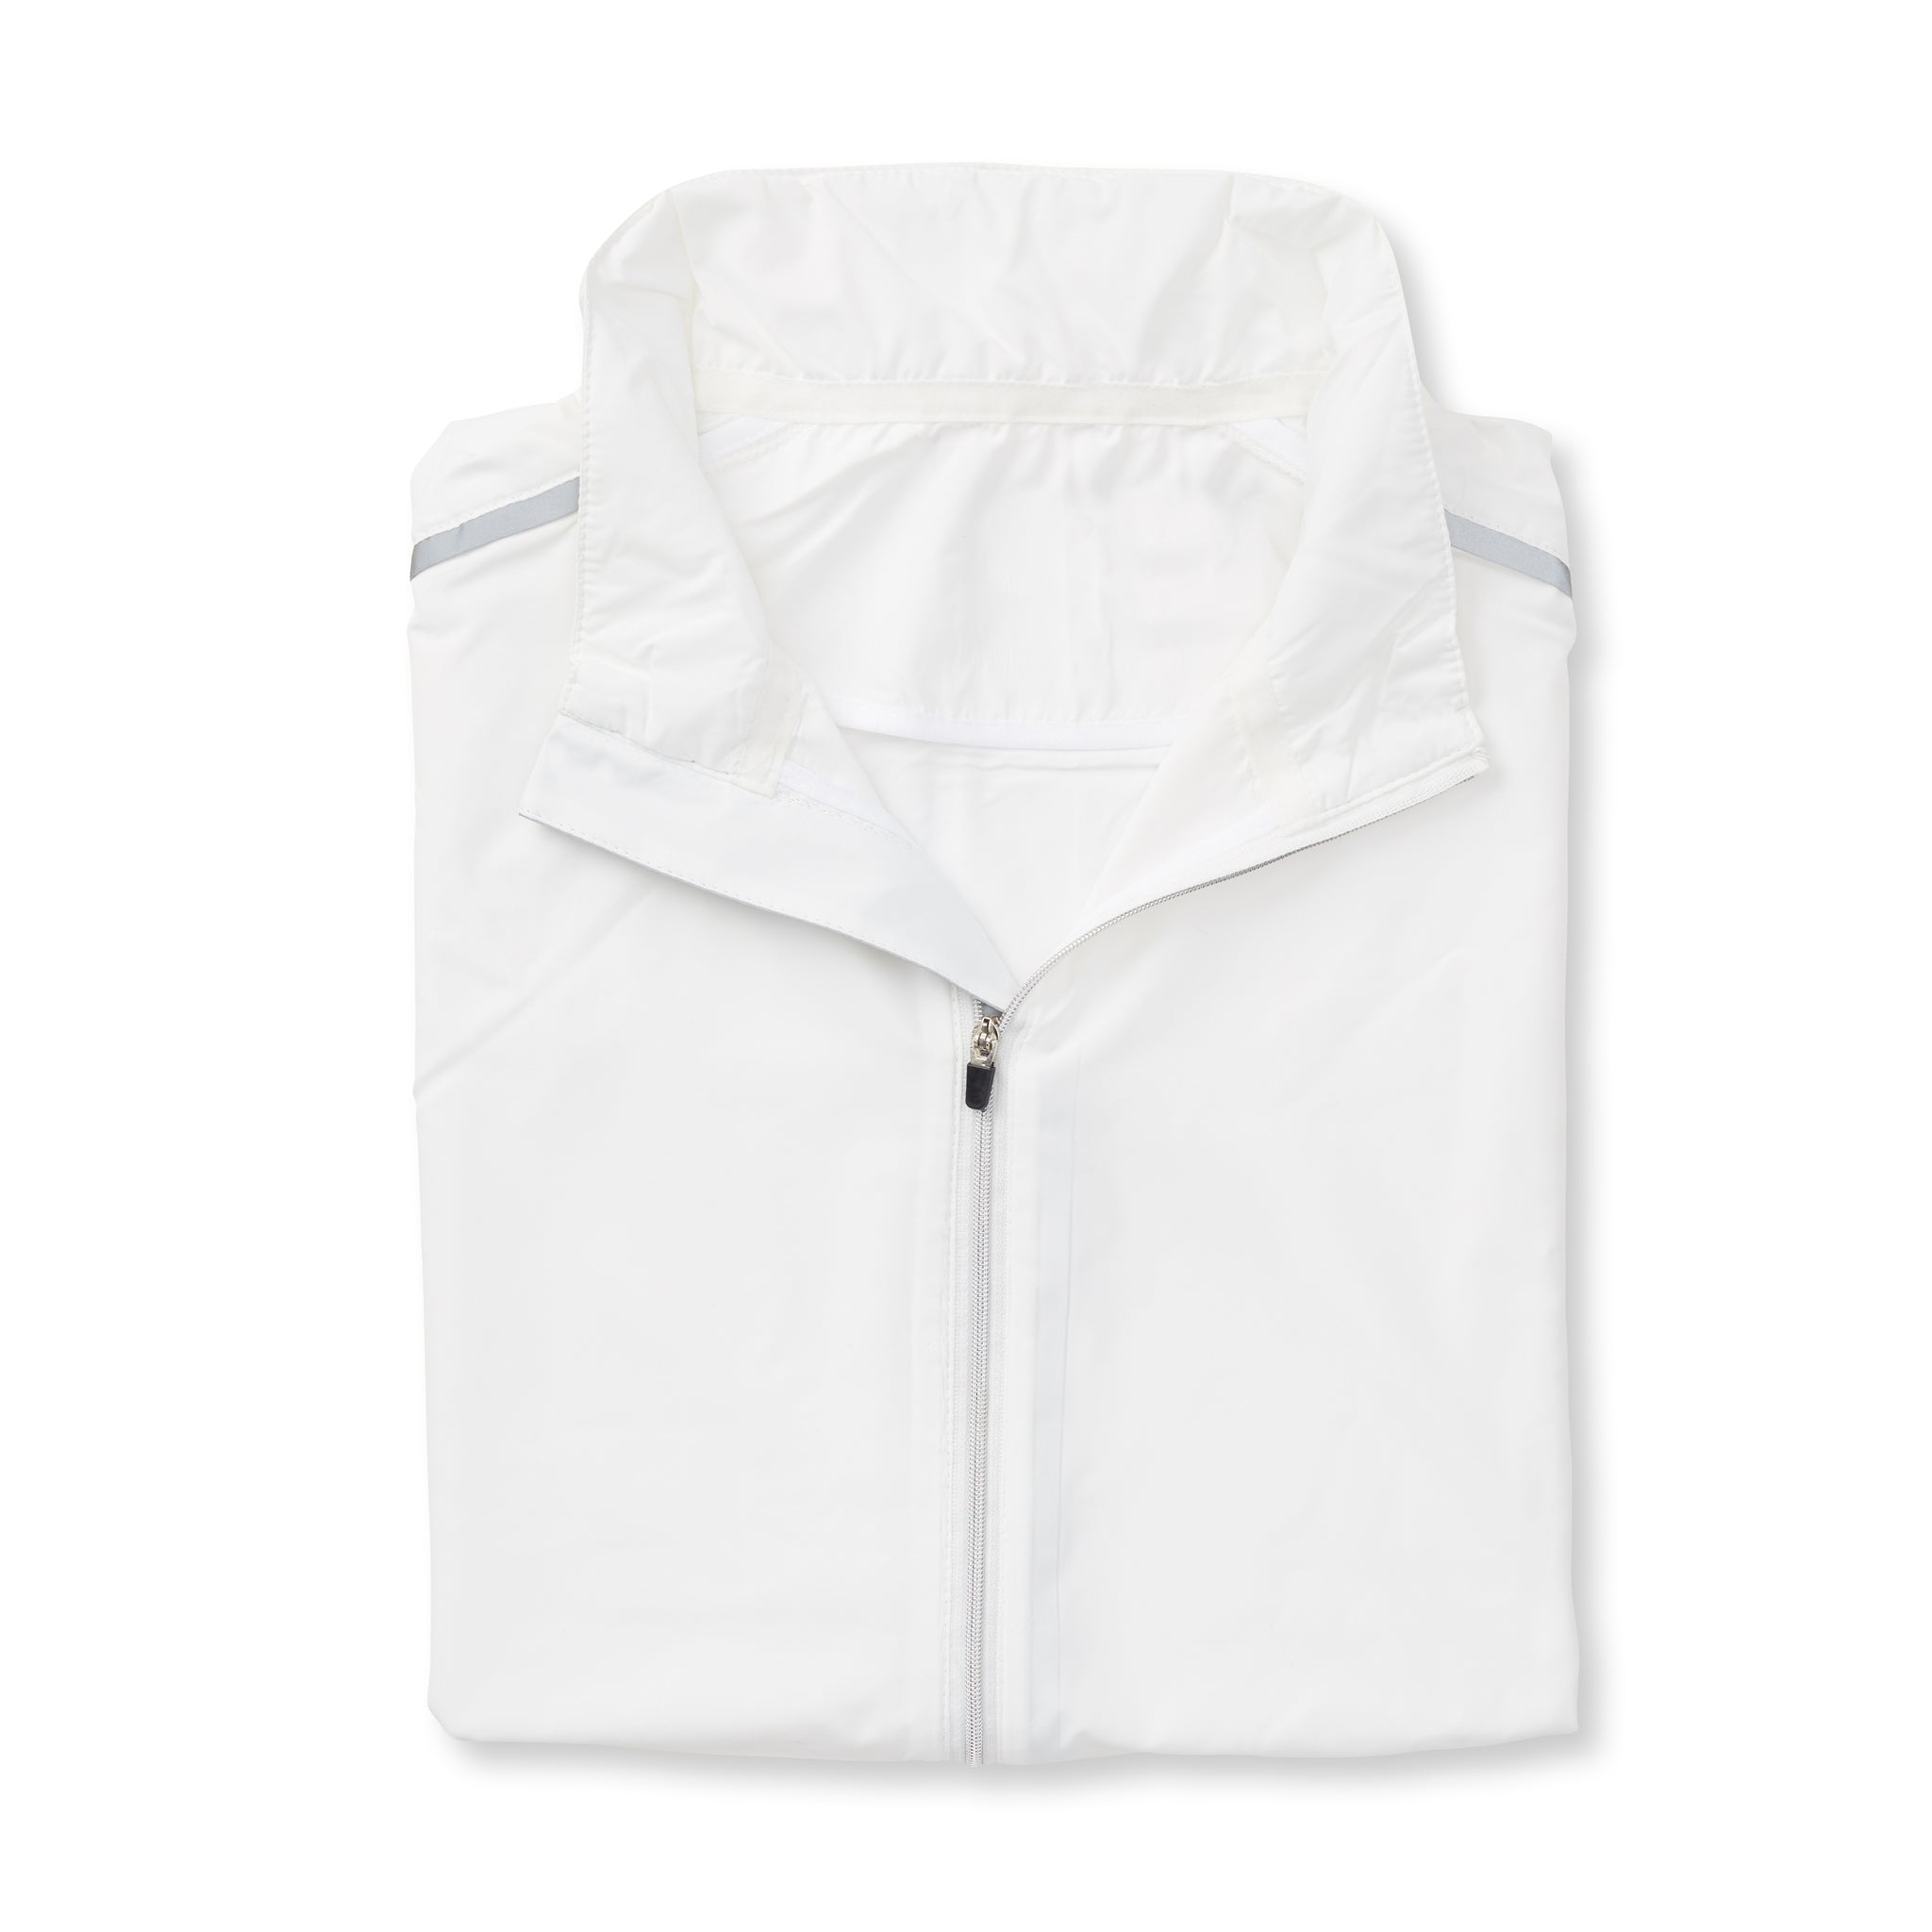 TEC WINDWEAR Full Zip Vest - White IS64905VES